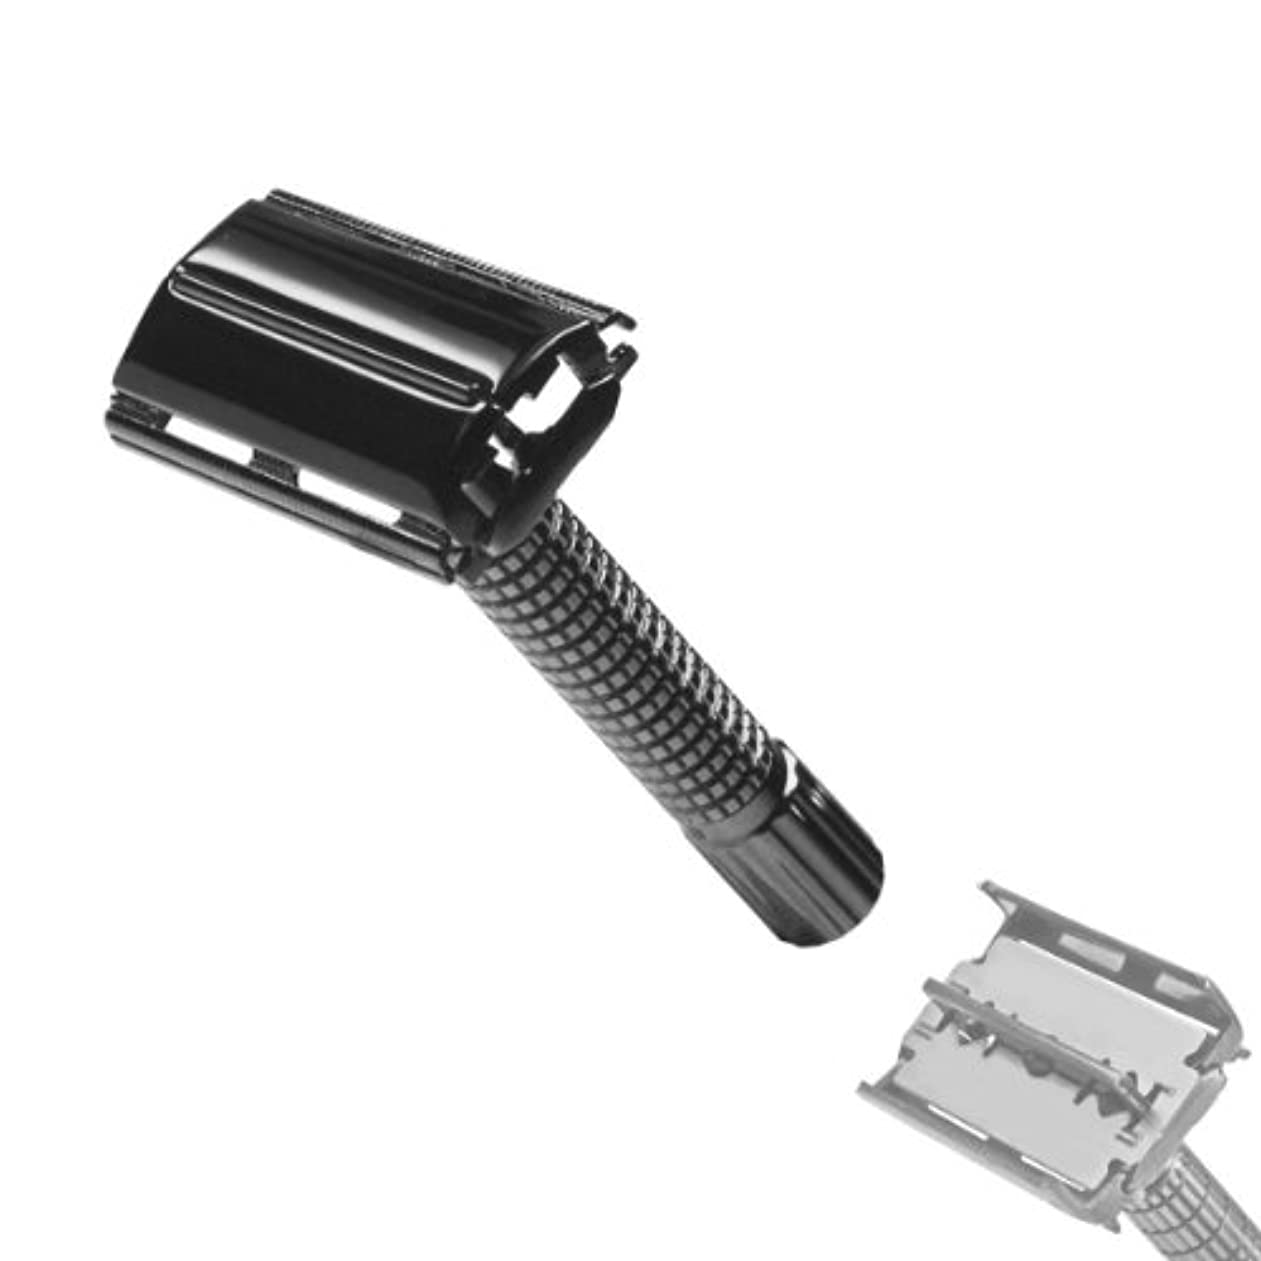 噛むルール閃光RAZOLUTION TwinTop Safety razor, Butterfly system, black chrome, 8 cm